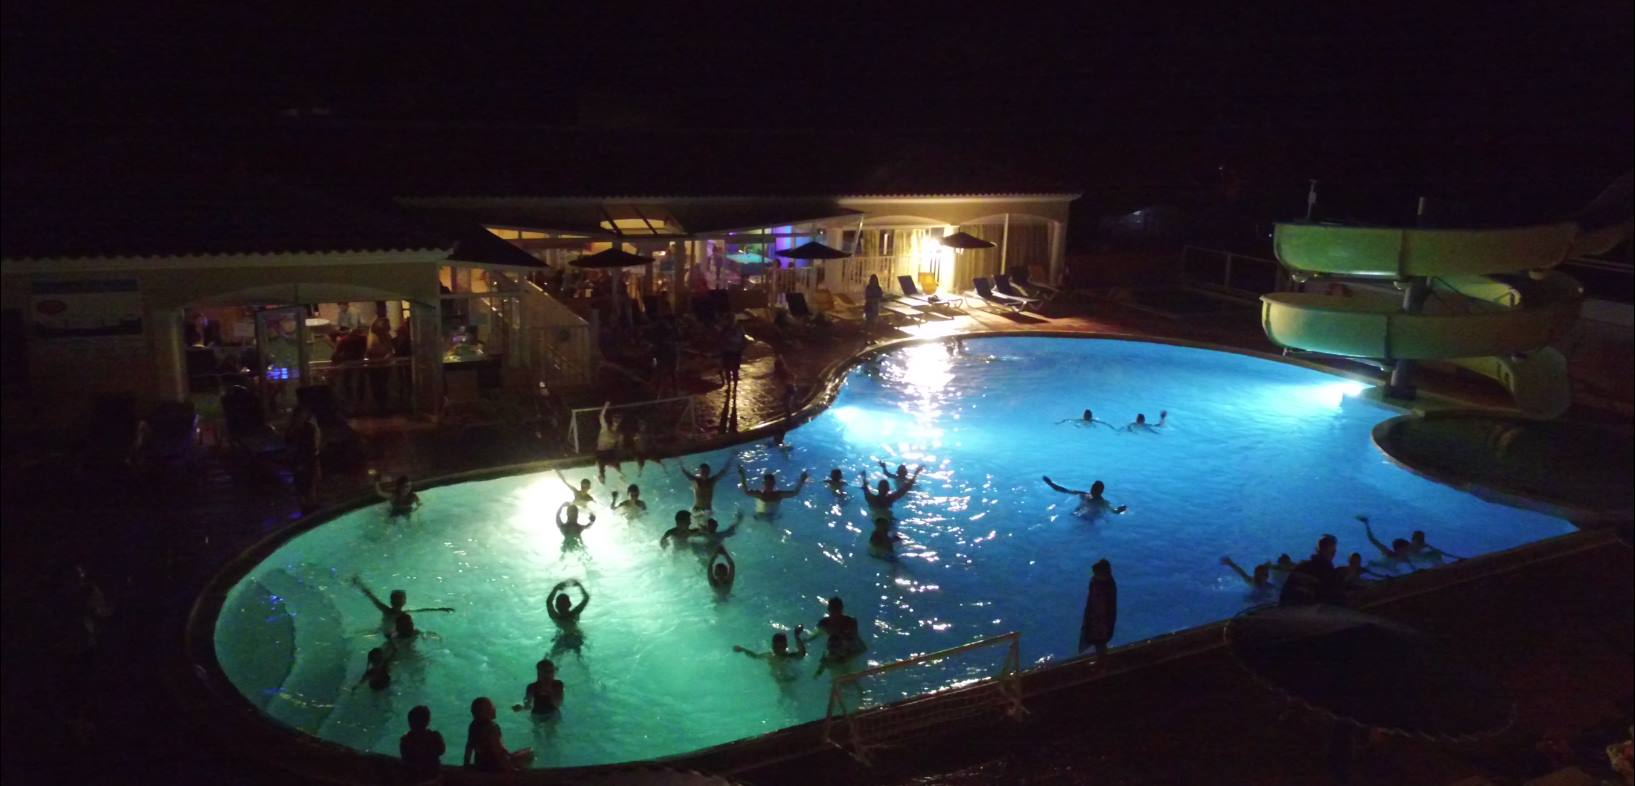 Piscine Nantes Ouverte Le Soir Theme Nights Activities And Entertainment On The Campsite